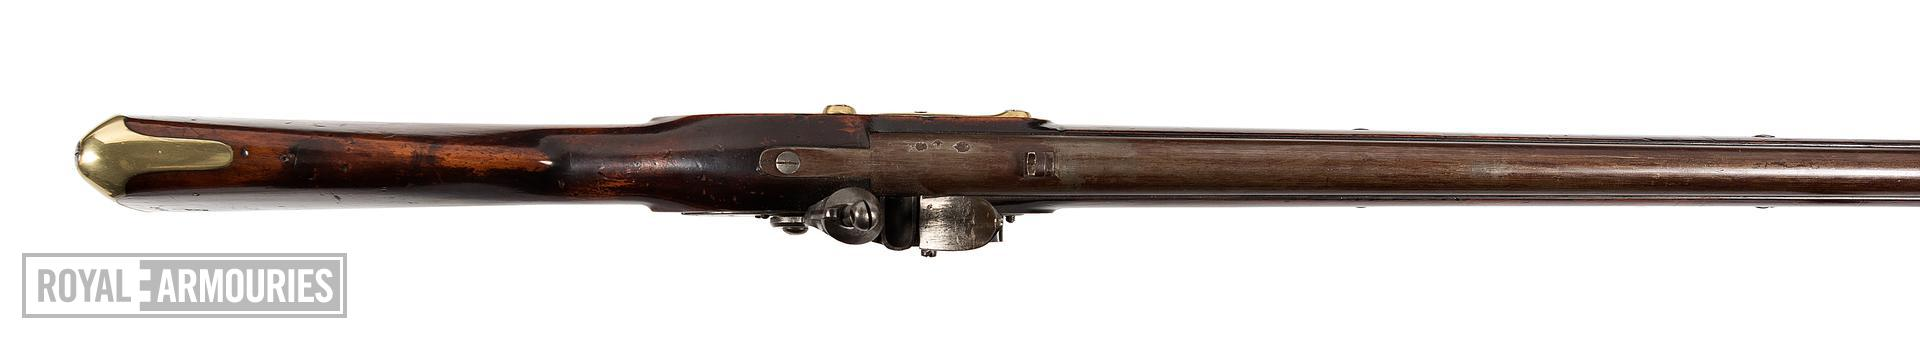 Pattern 1805 New Land type flintlock muzzle-loading military musket, Britain, about 1811 (XII.3101)